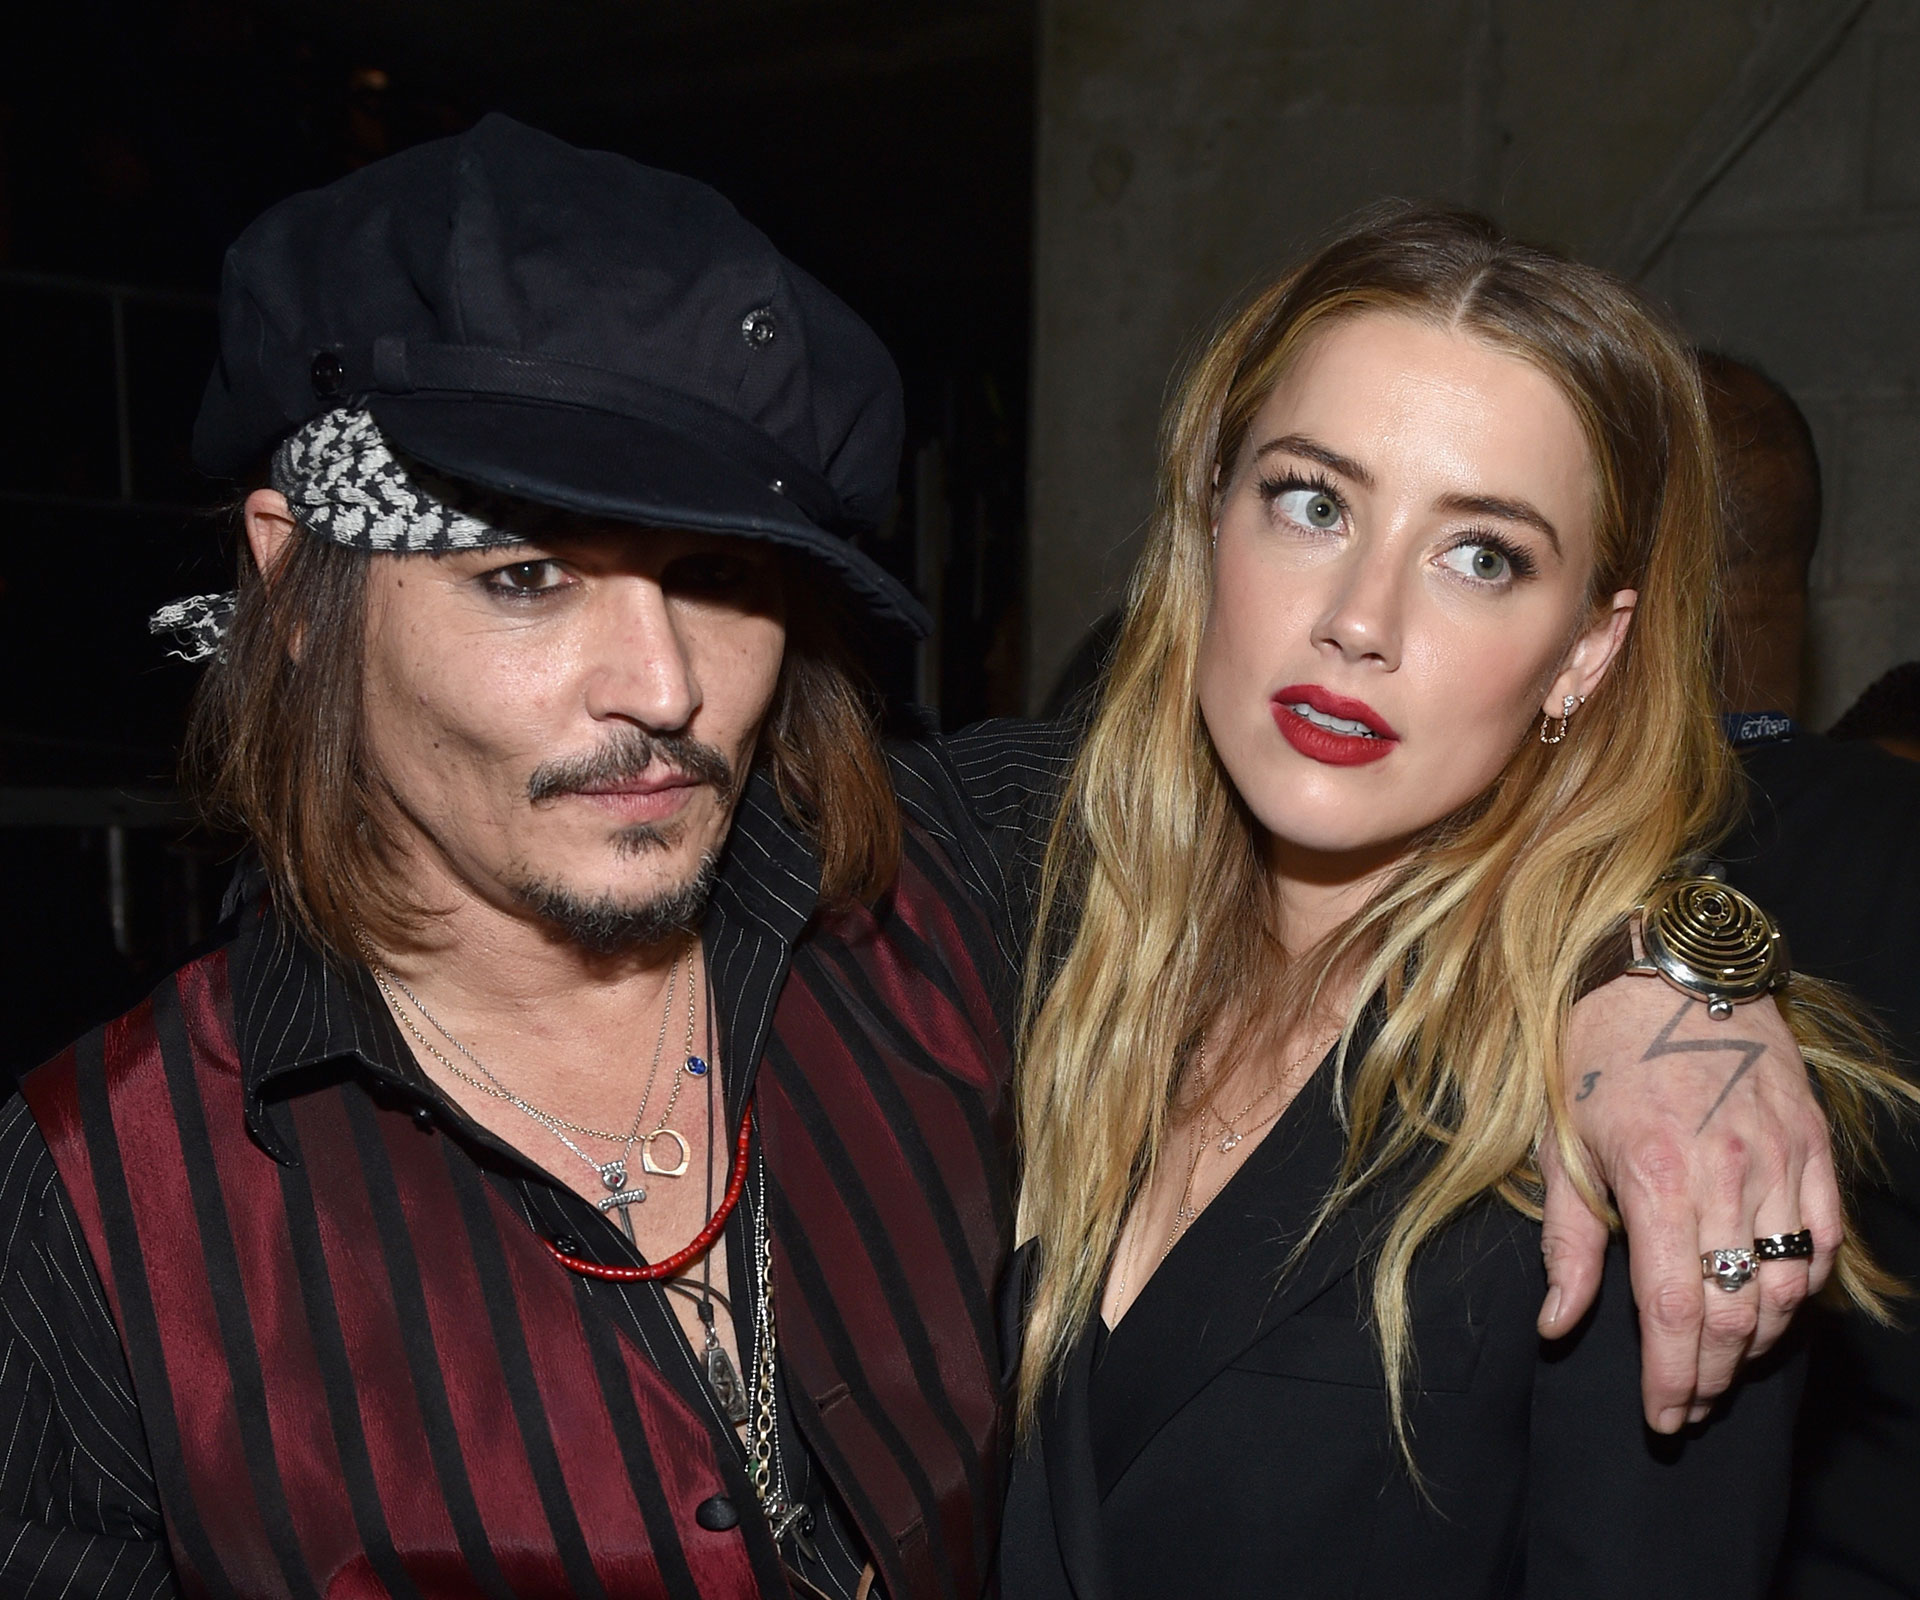 Amber Heard gets restraining order extension as judge reschedules hearing